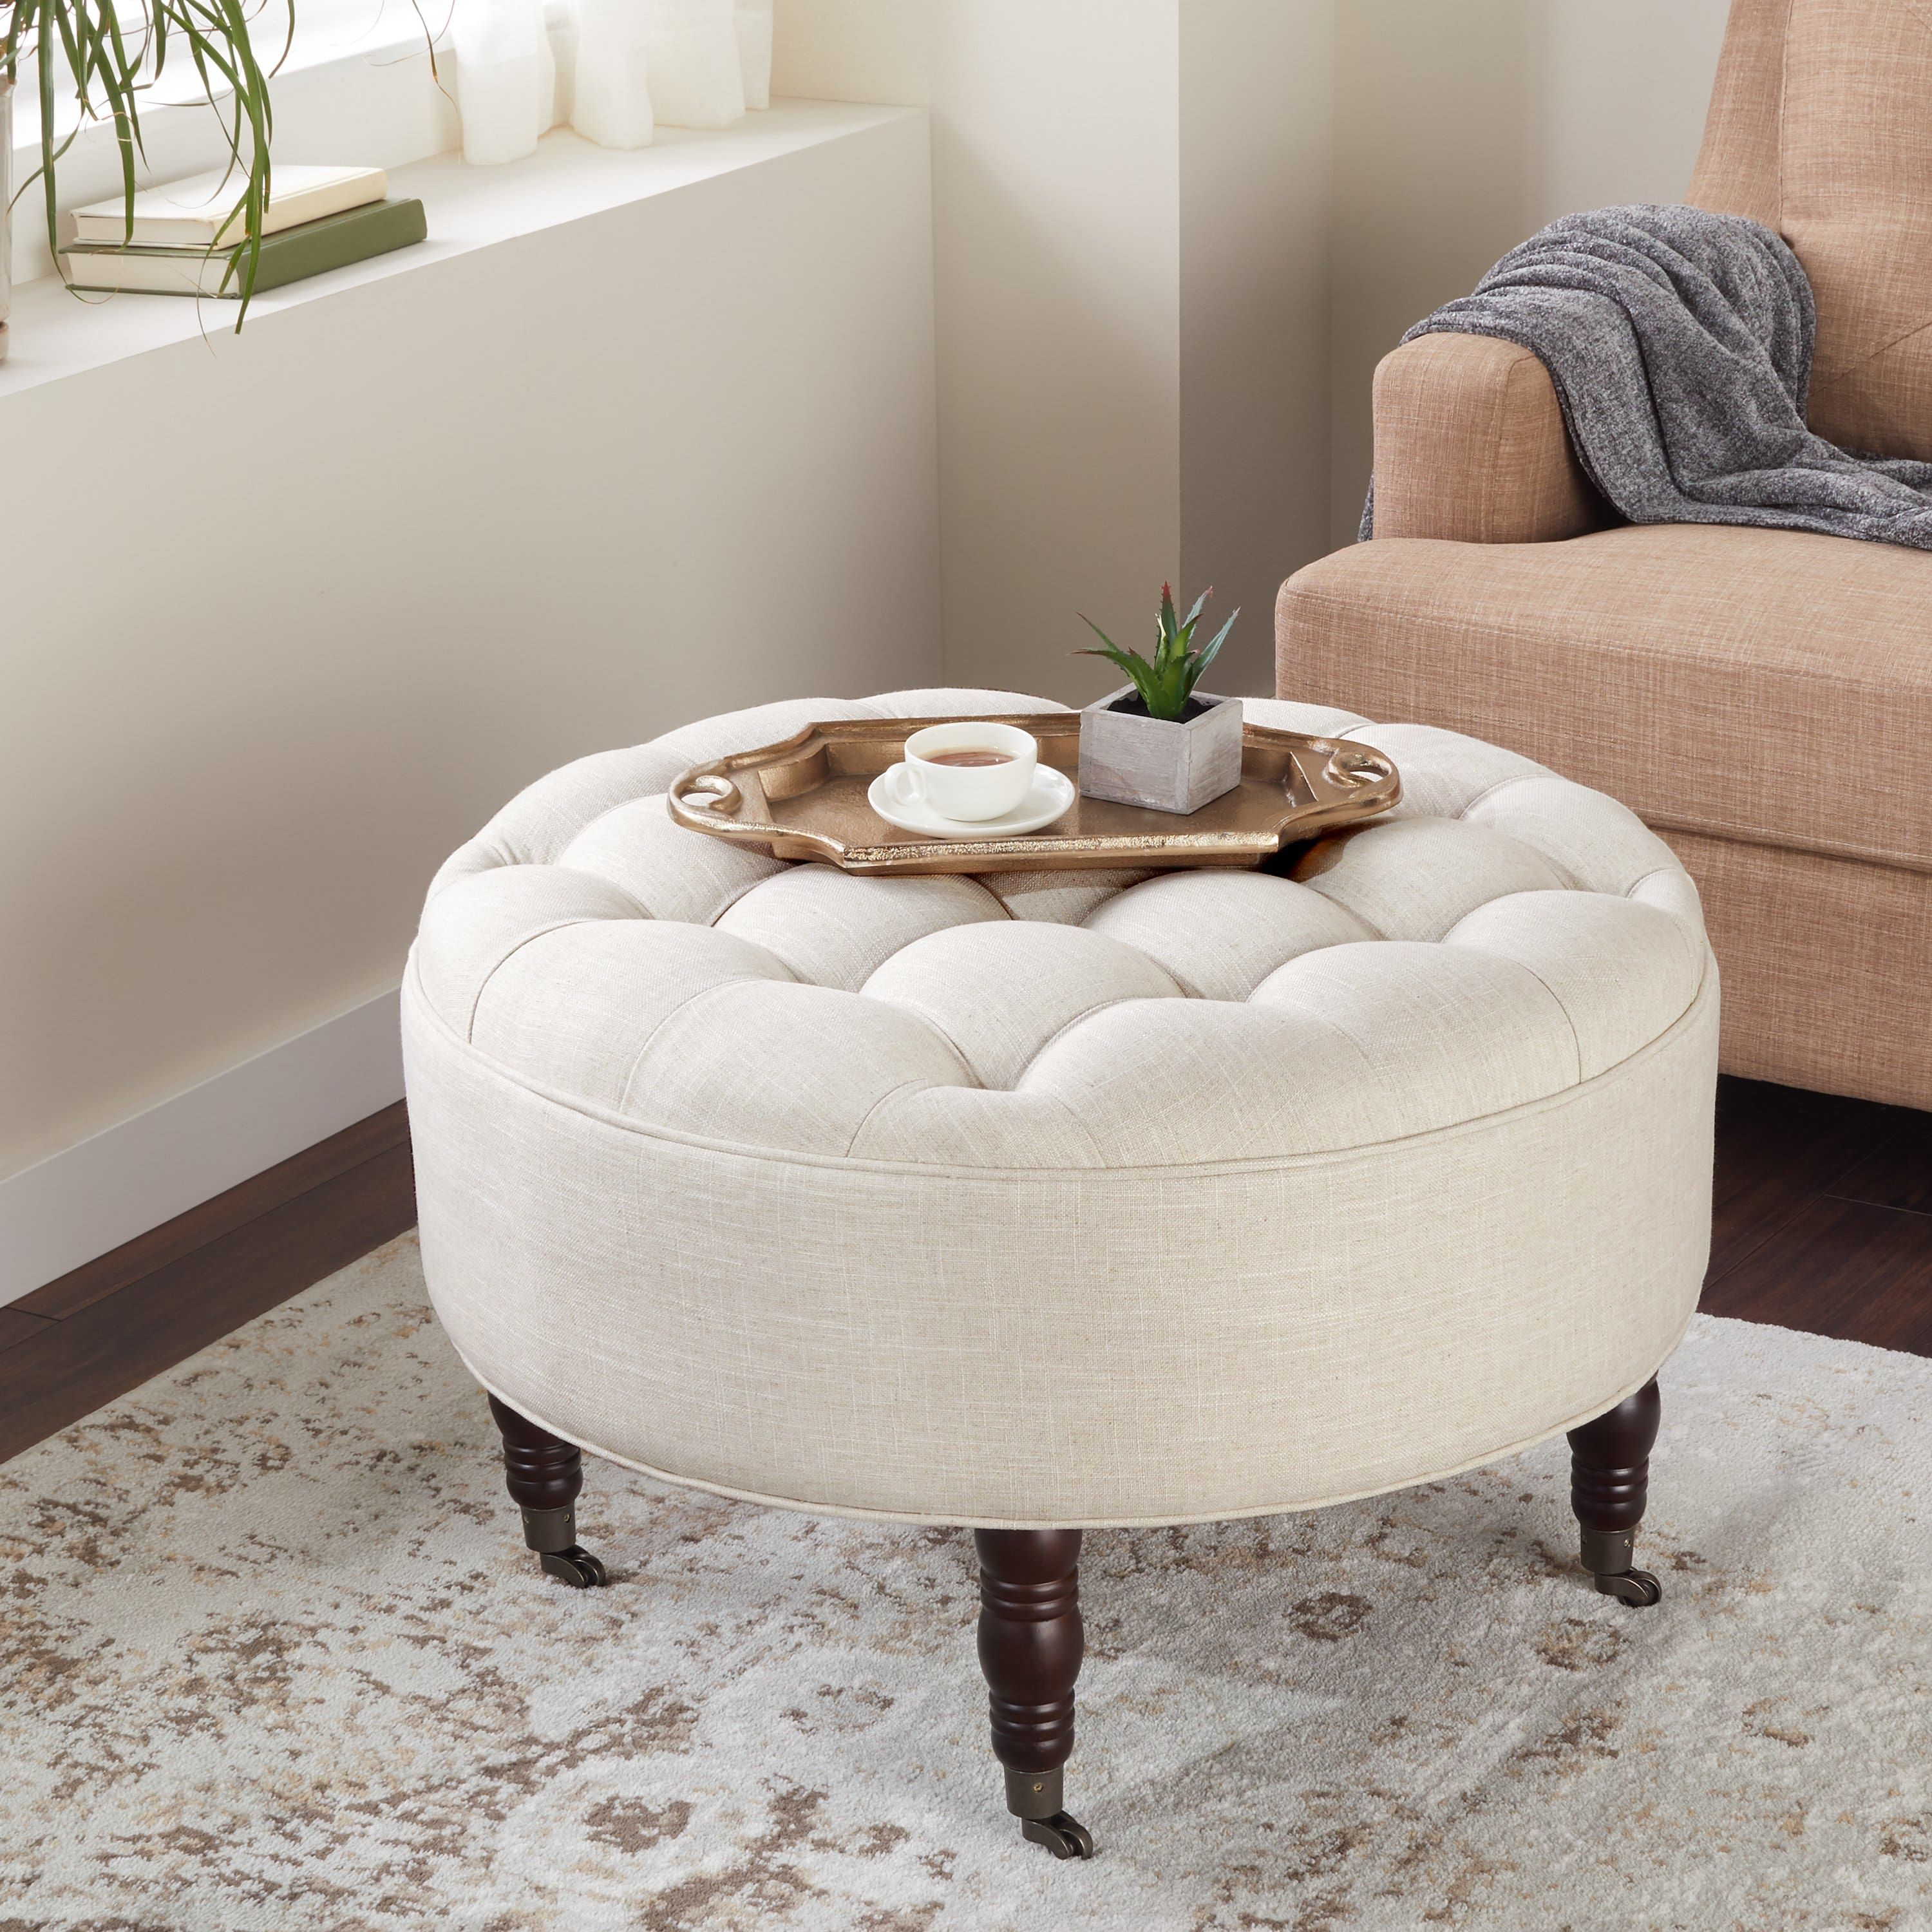 Abbyson Clarence Tufted Round Ottoman White Furniture Living